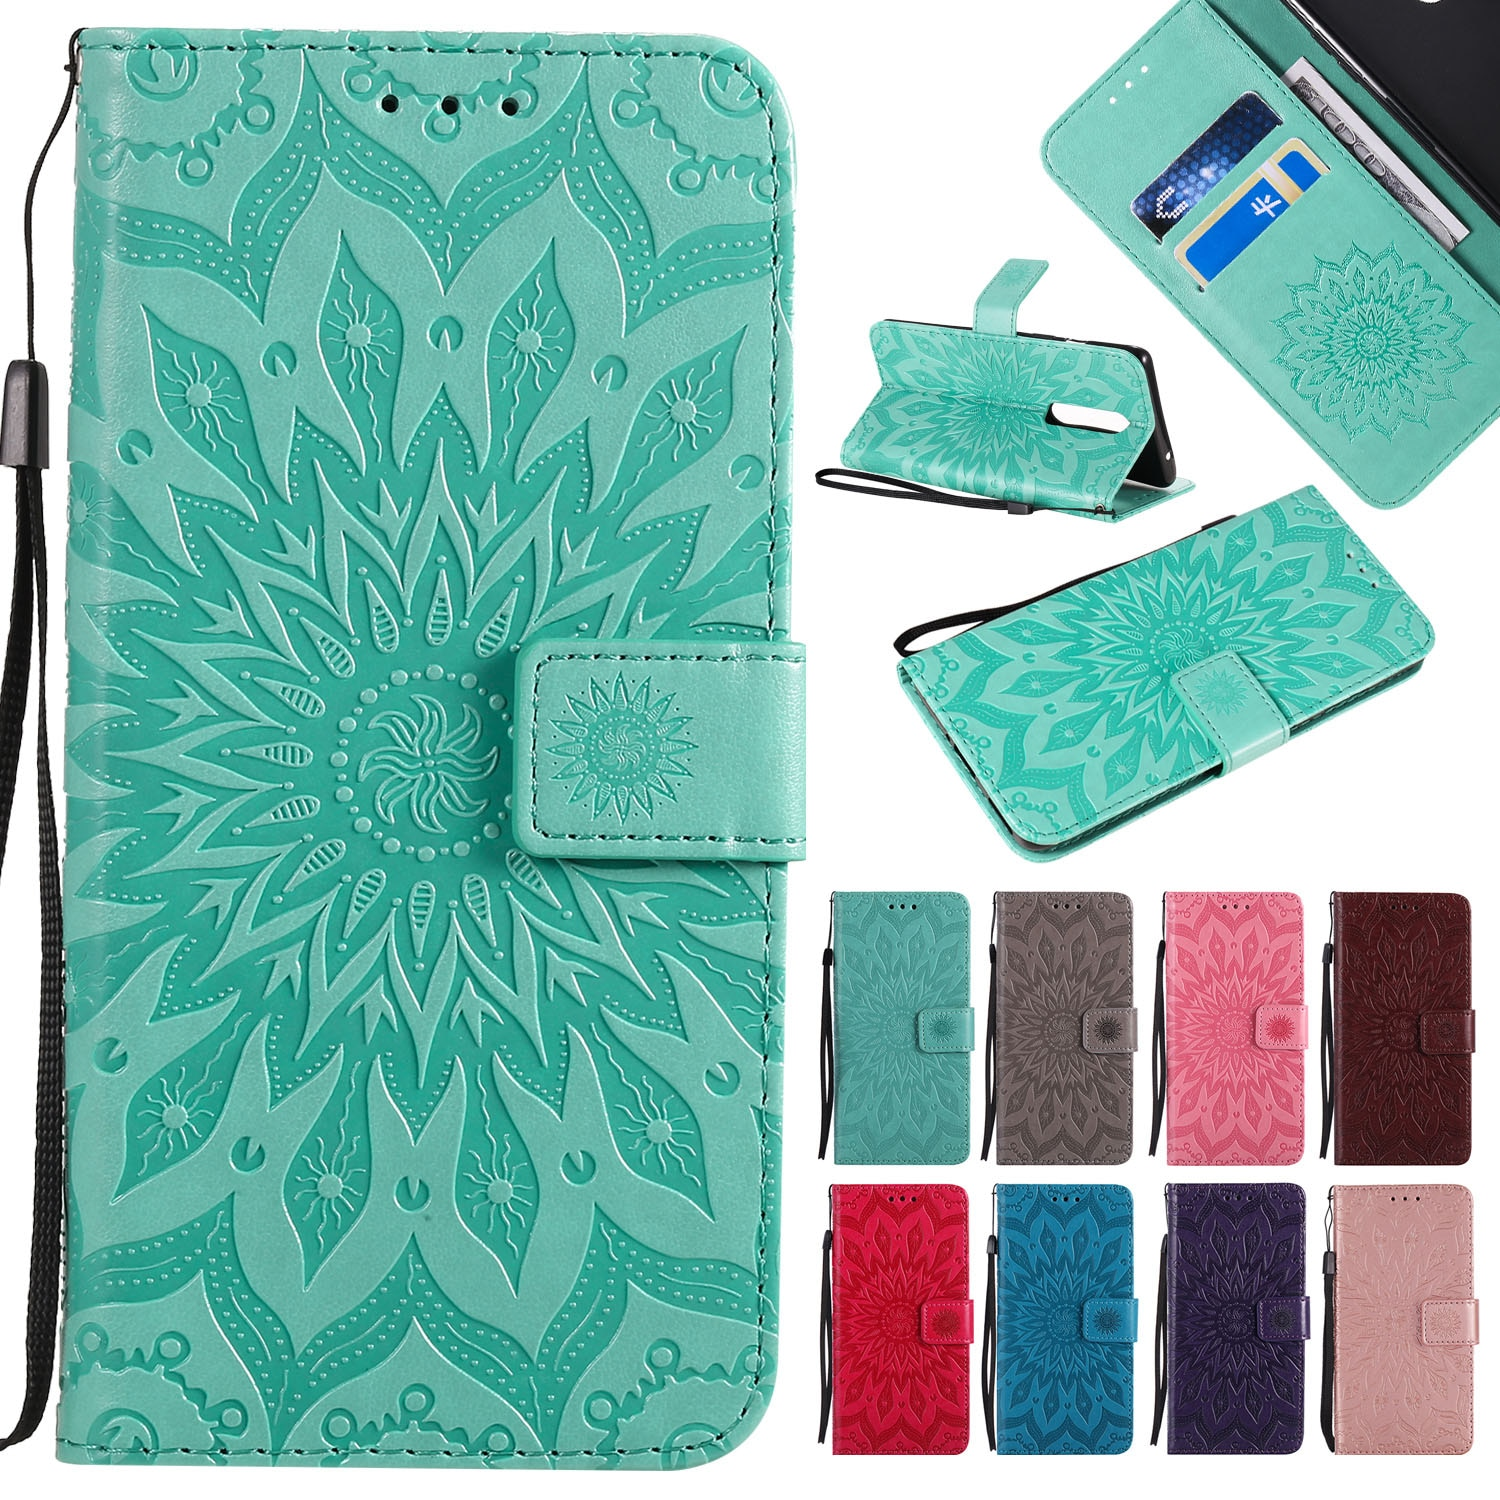 3D Wallet Flip Sunflower Leather Case For Samsung S20 S10 S9 S8 S7 S6 S5 S4 S3 Note 3 4 5 8 9 10 Plus Lite Soft TPU Phone Cover